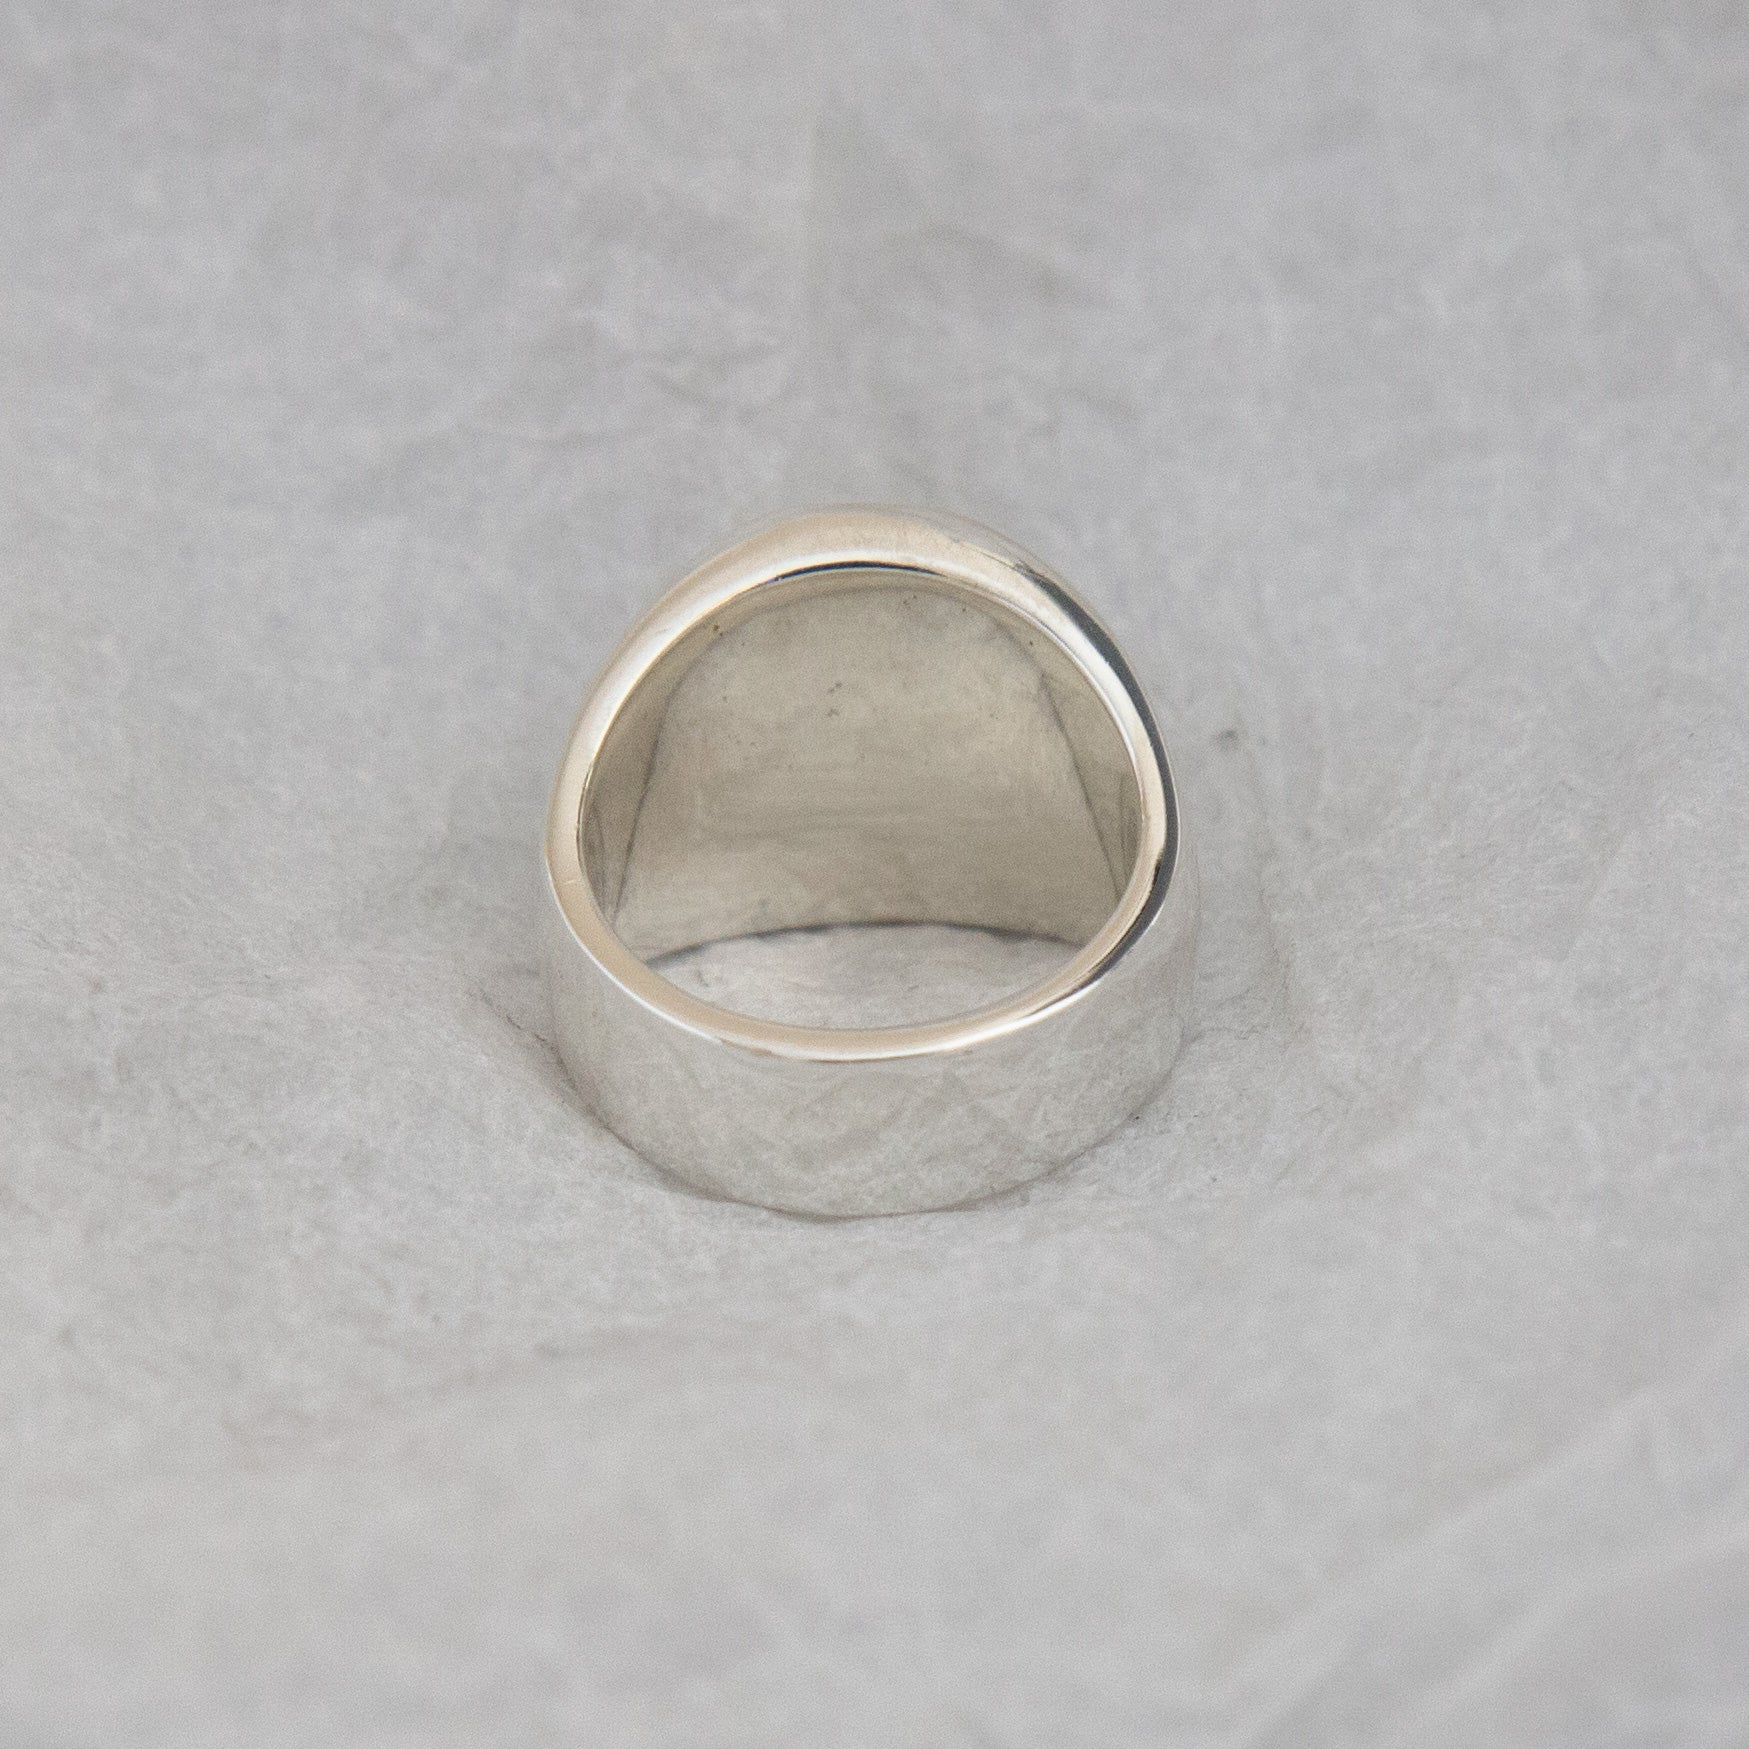 1. LAB/P Fossilised Coral Round Signet Ring SIZE K